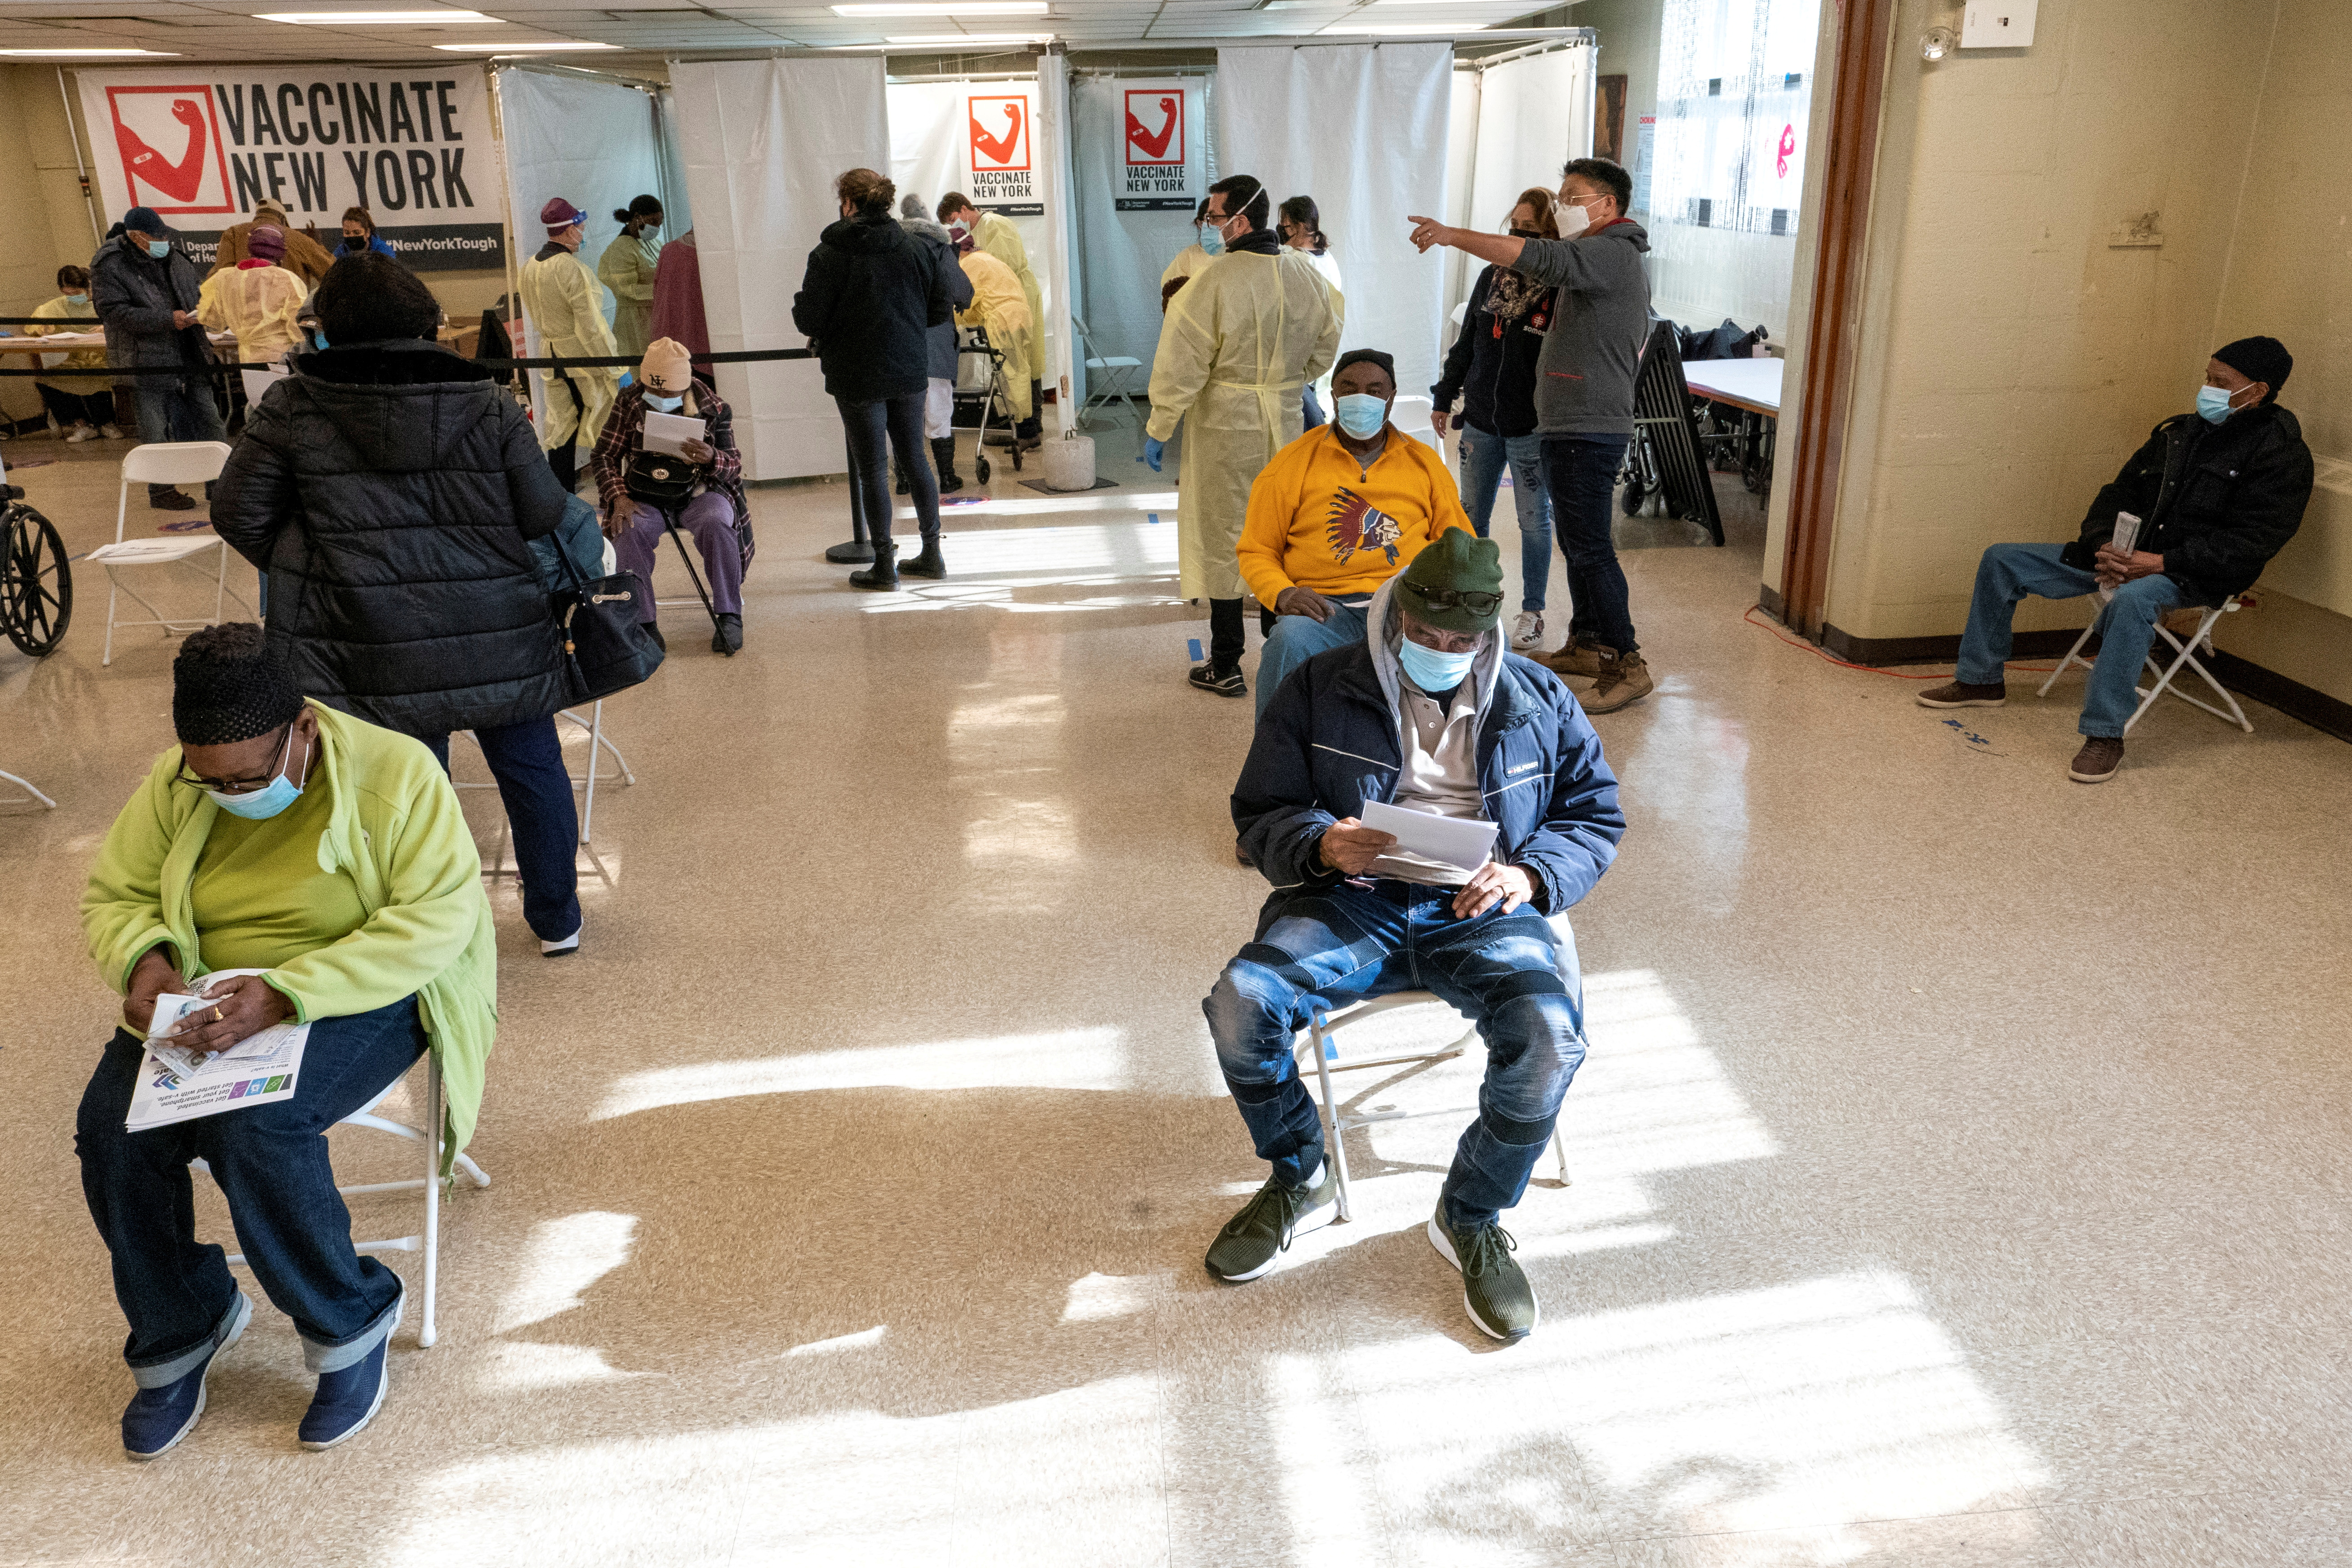 Residents of William Reid Apartments rest for a few minutes after receiving the first dose of the COVID-19 vaccine at a pop-up vaccination site in the NYCHA housing complex in Brooklyn, New York City, U.S., January 23, 2021. Mary Altaffer/Pool via REUTERS